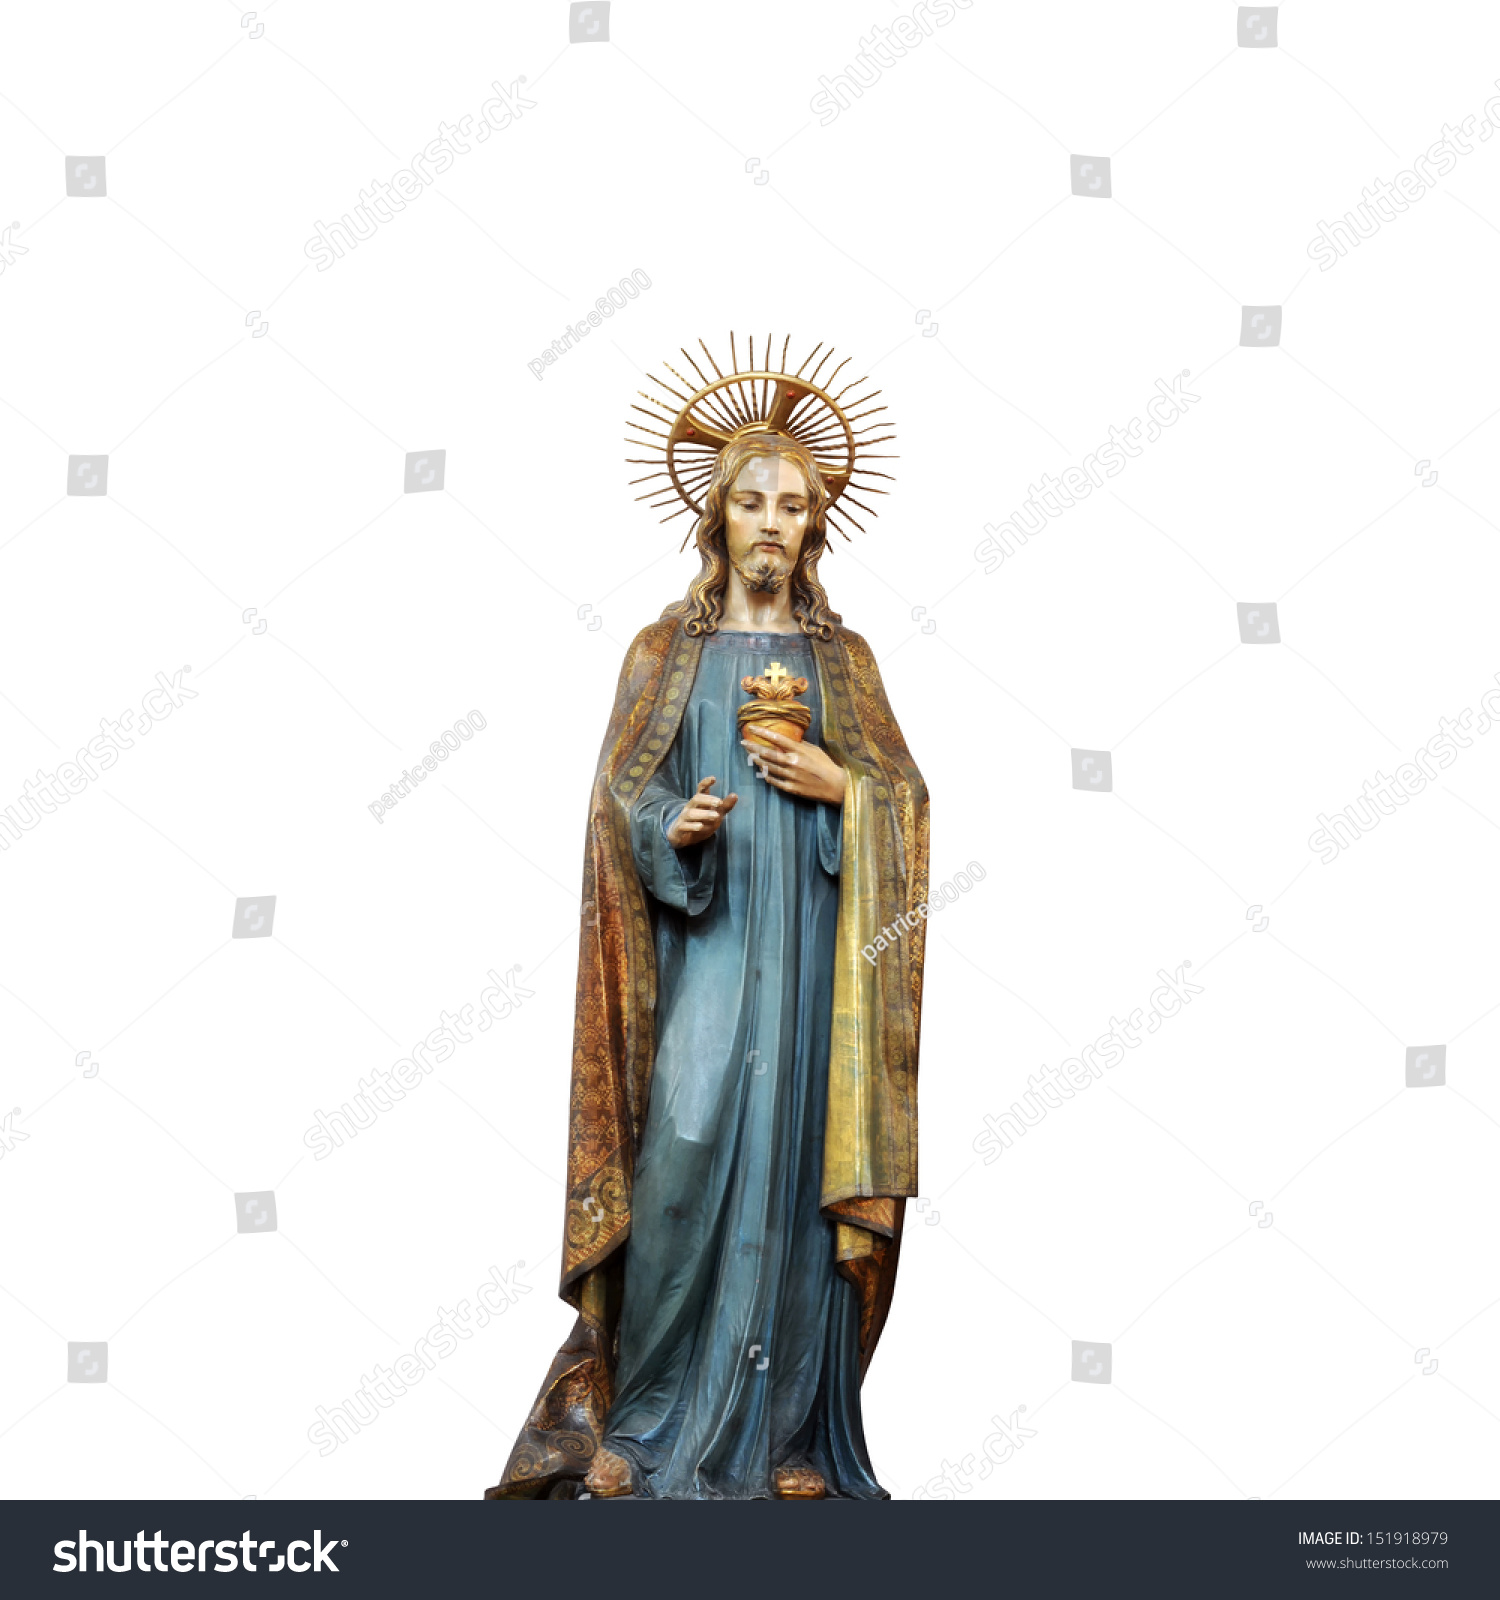 the religious concept of the jesus christ in christianity religion The christian religion is founded on jesus christ who walked christianity was founded by jesus christ write about the concept of ascetics and christianity.